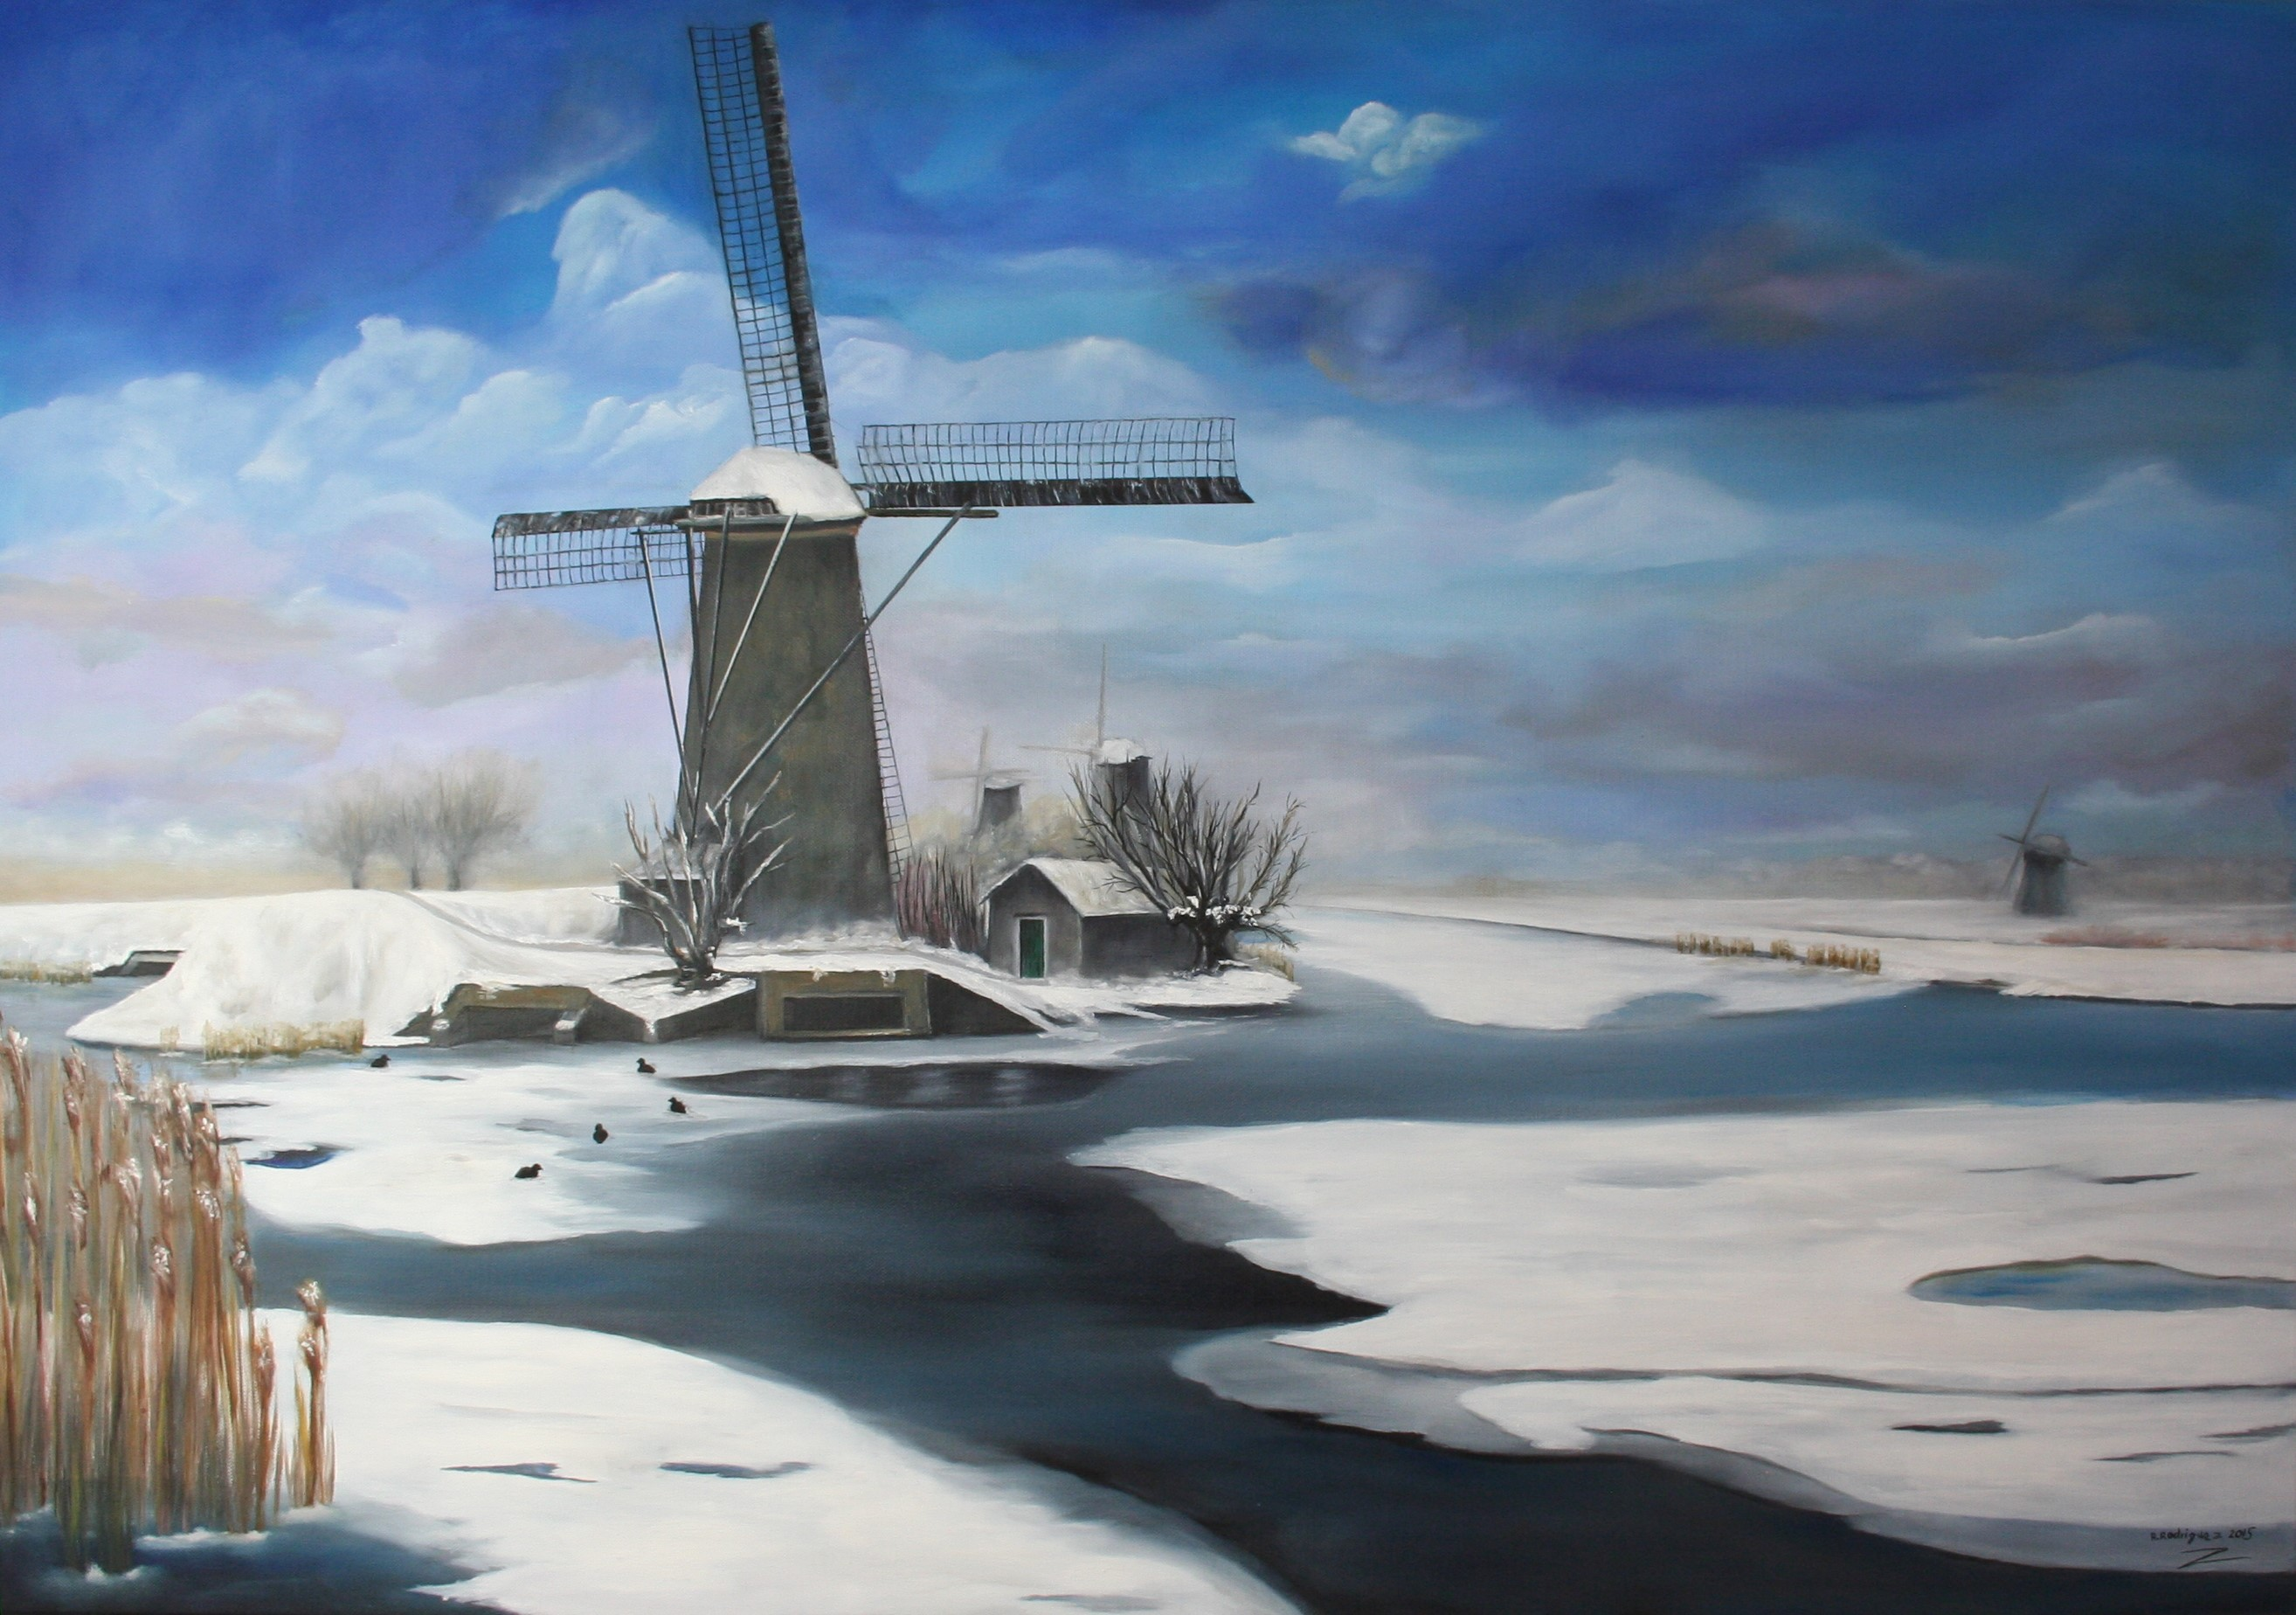 WL 2015 45 70x100 Olie   Molens in de winter